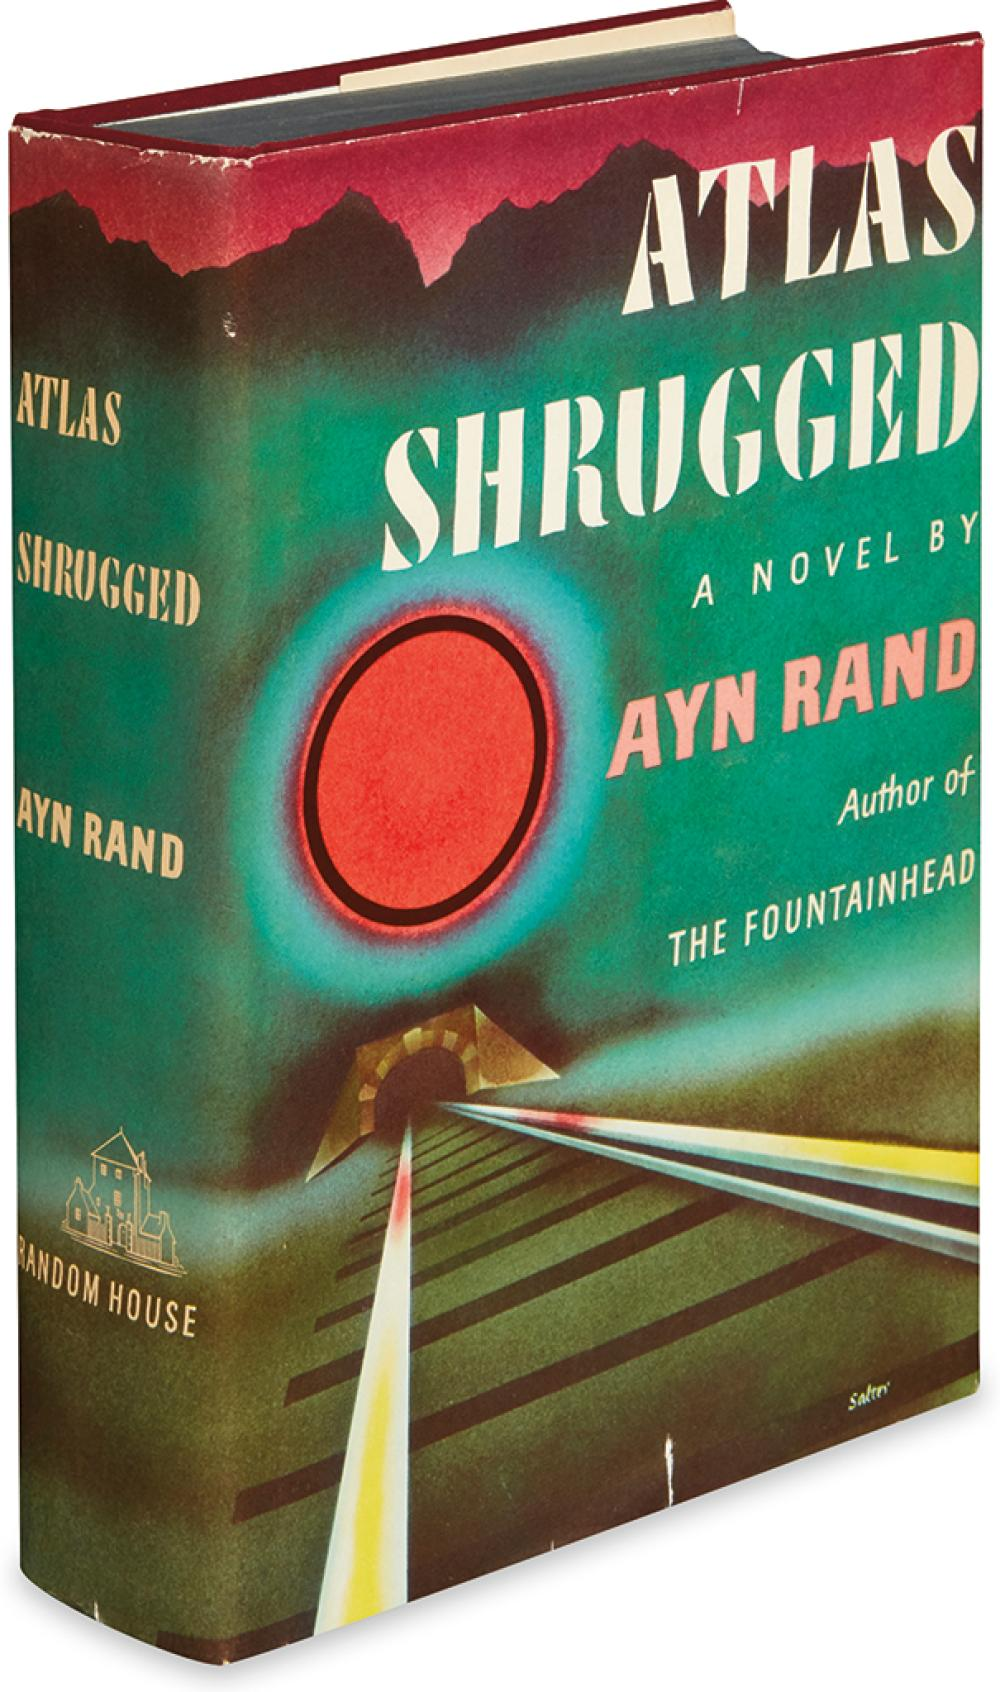 RAND, AYN. Atlas Shrugged.